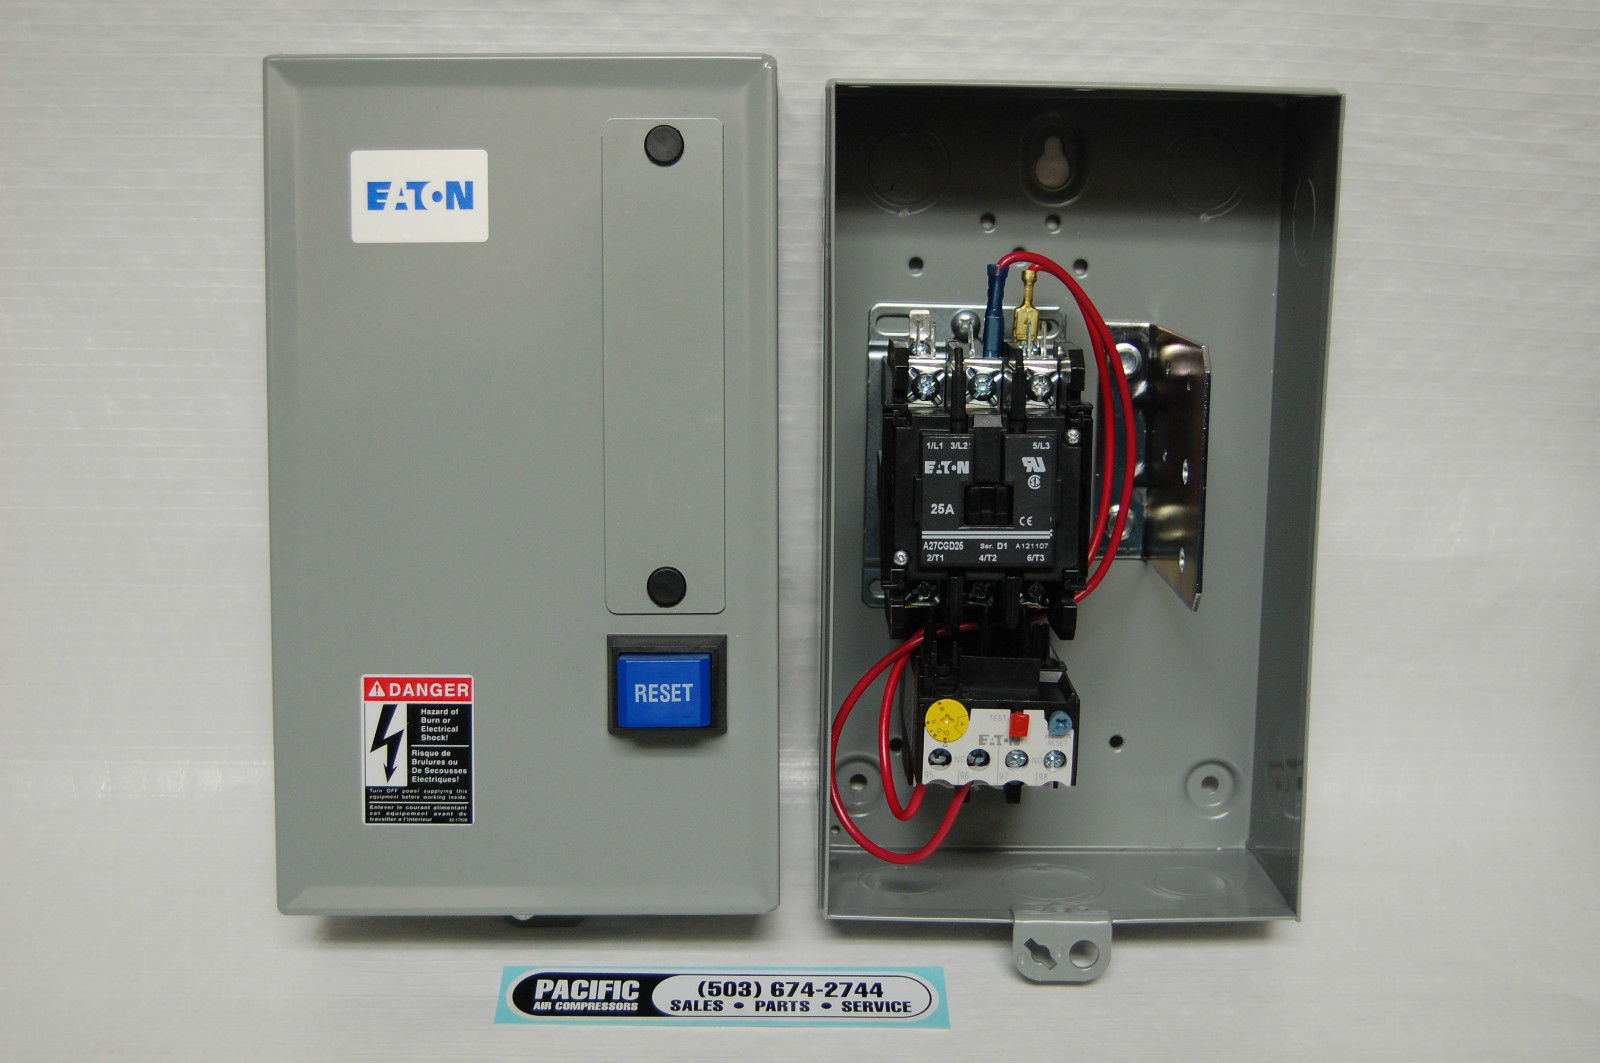 230 volt 3 phase wiring diagram 2005 ford taurus ignition eaton magnetic motor starter 15 hp three